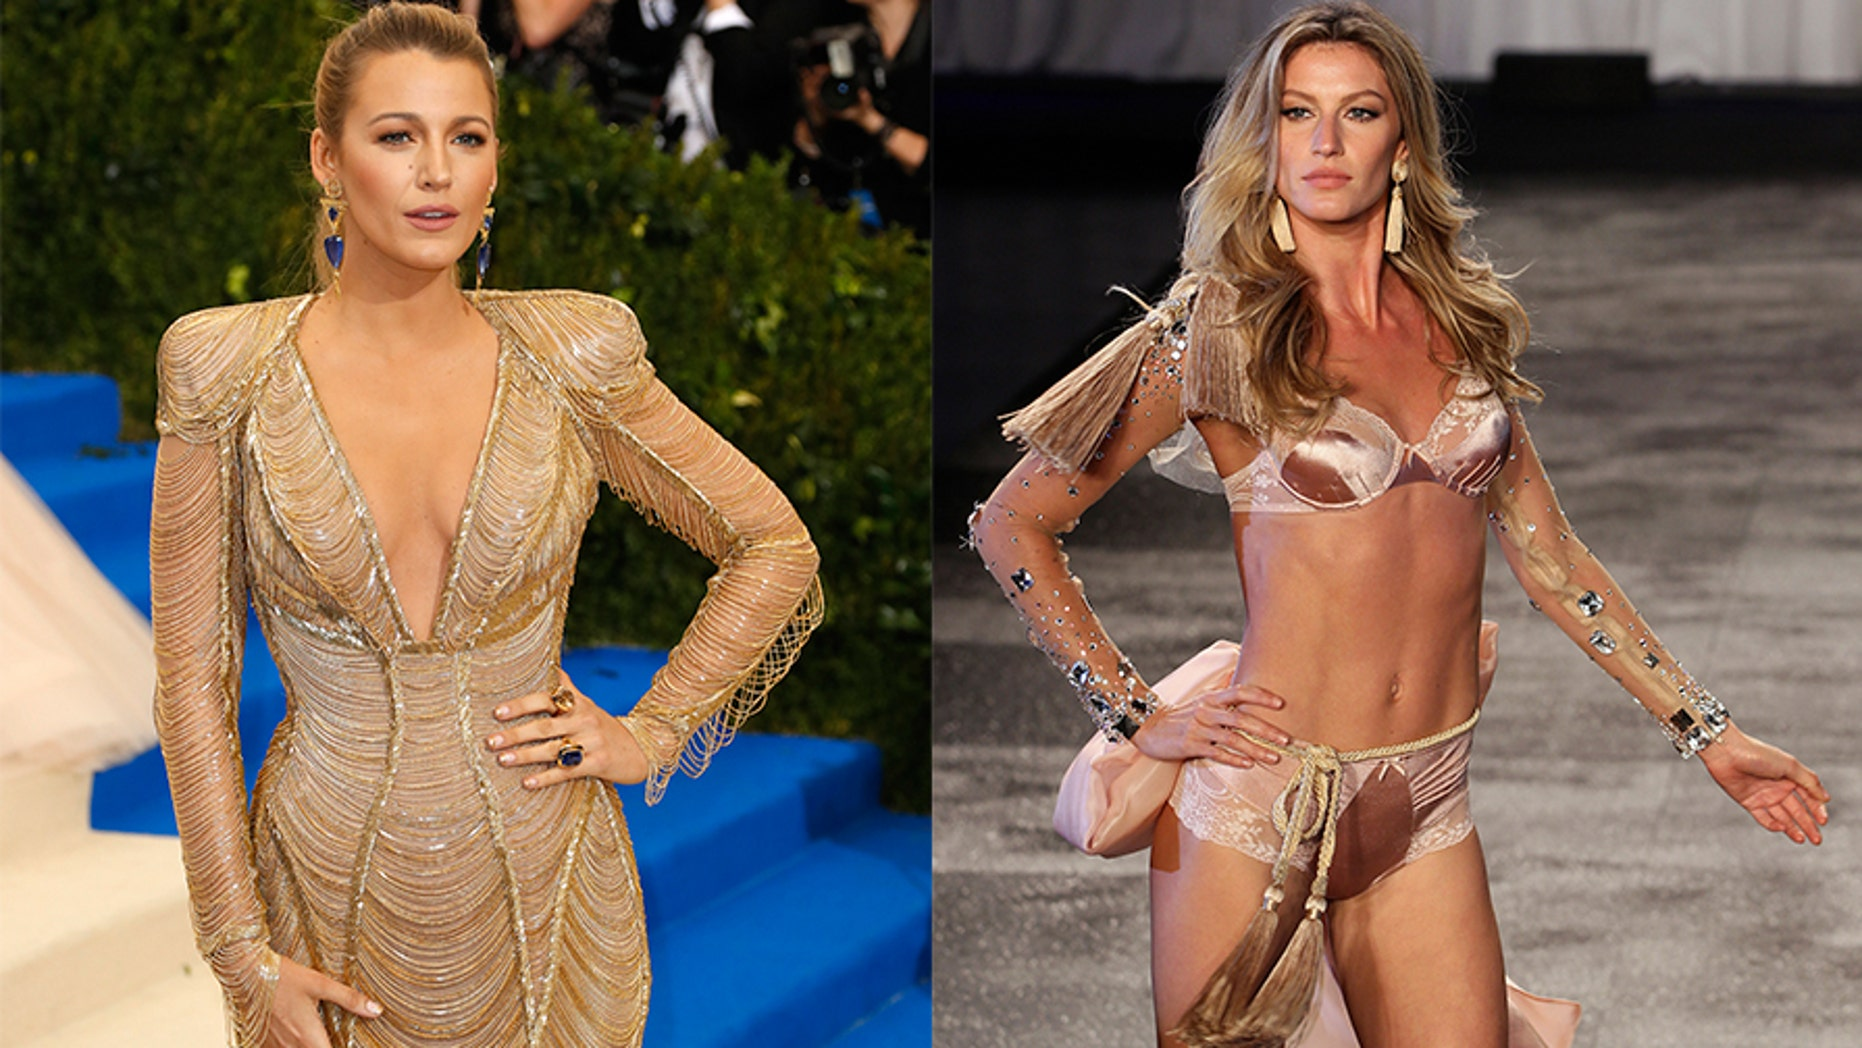 Actress Blake Lively claimed supermodel Gisele Bündchen motivates her to stay in camera-ready shape.